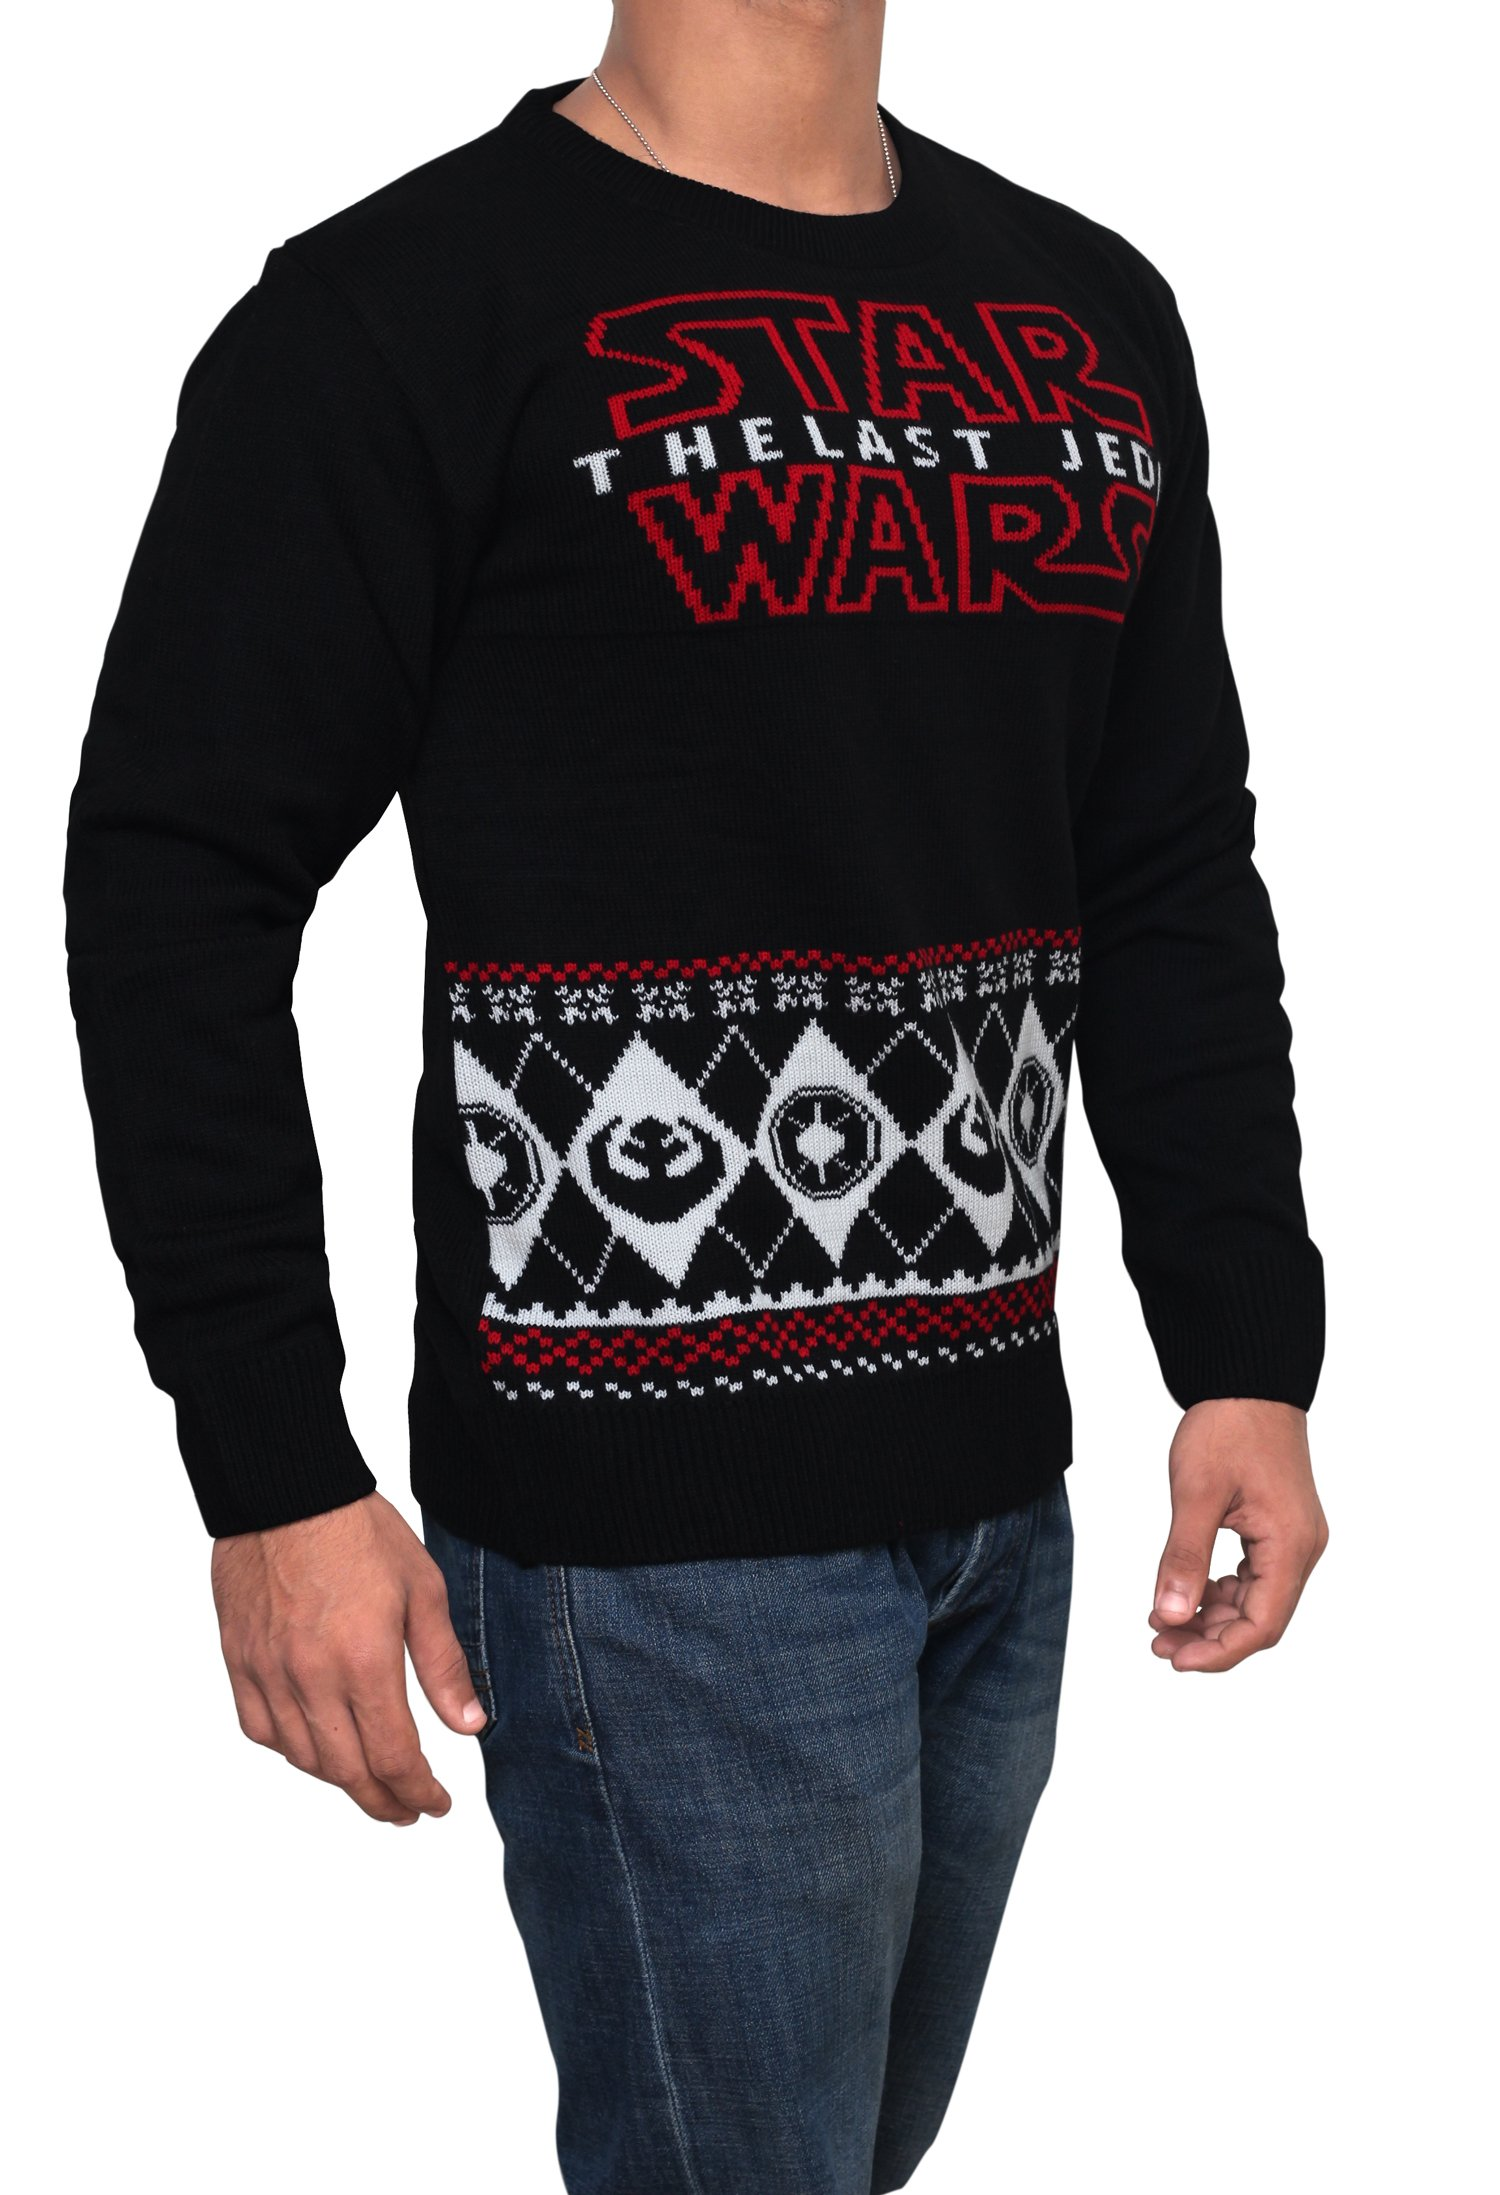 Star Wars Last Jedi Sweater - Star Wars Holiday Sweater by Miracle (Black, Large)